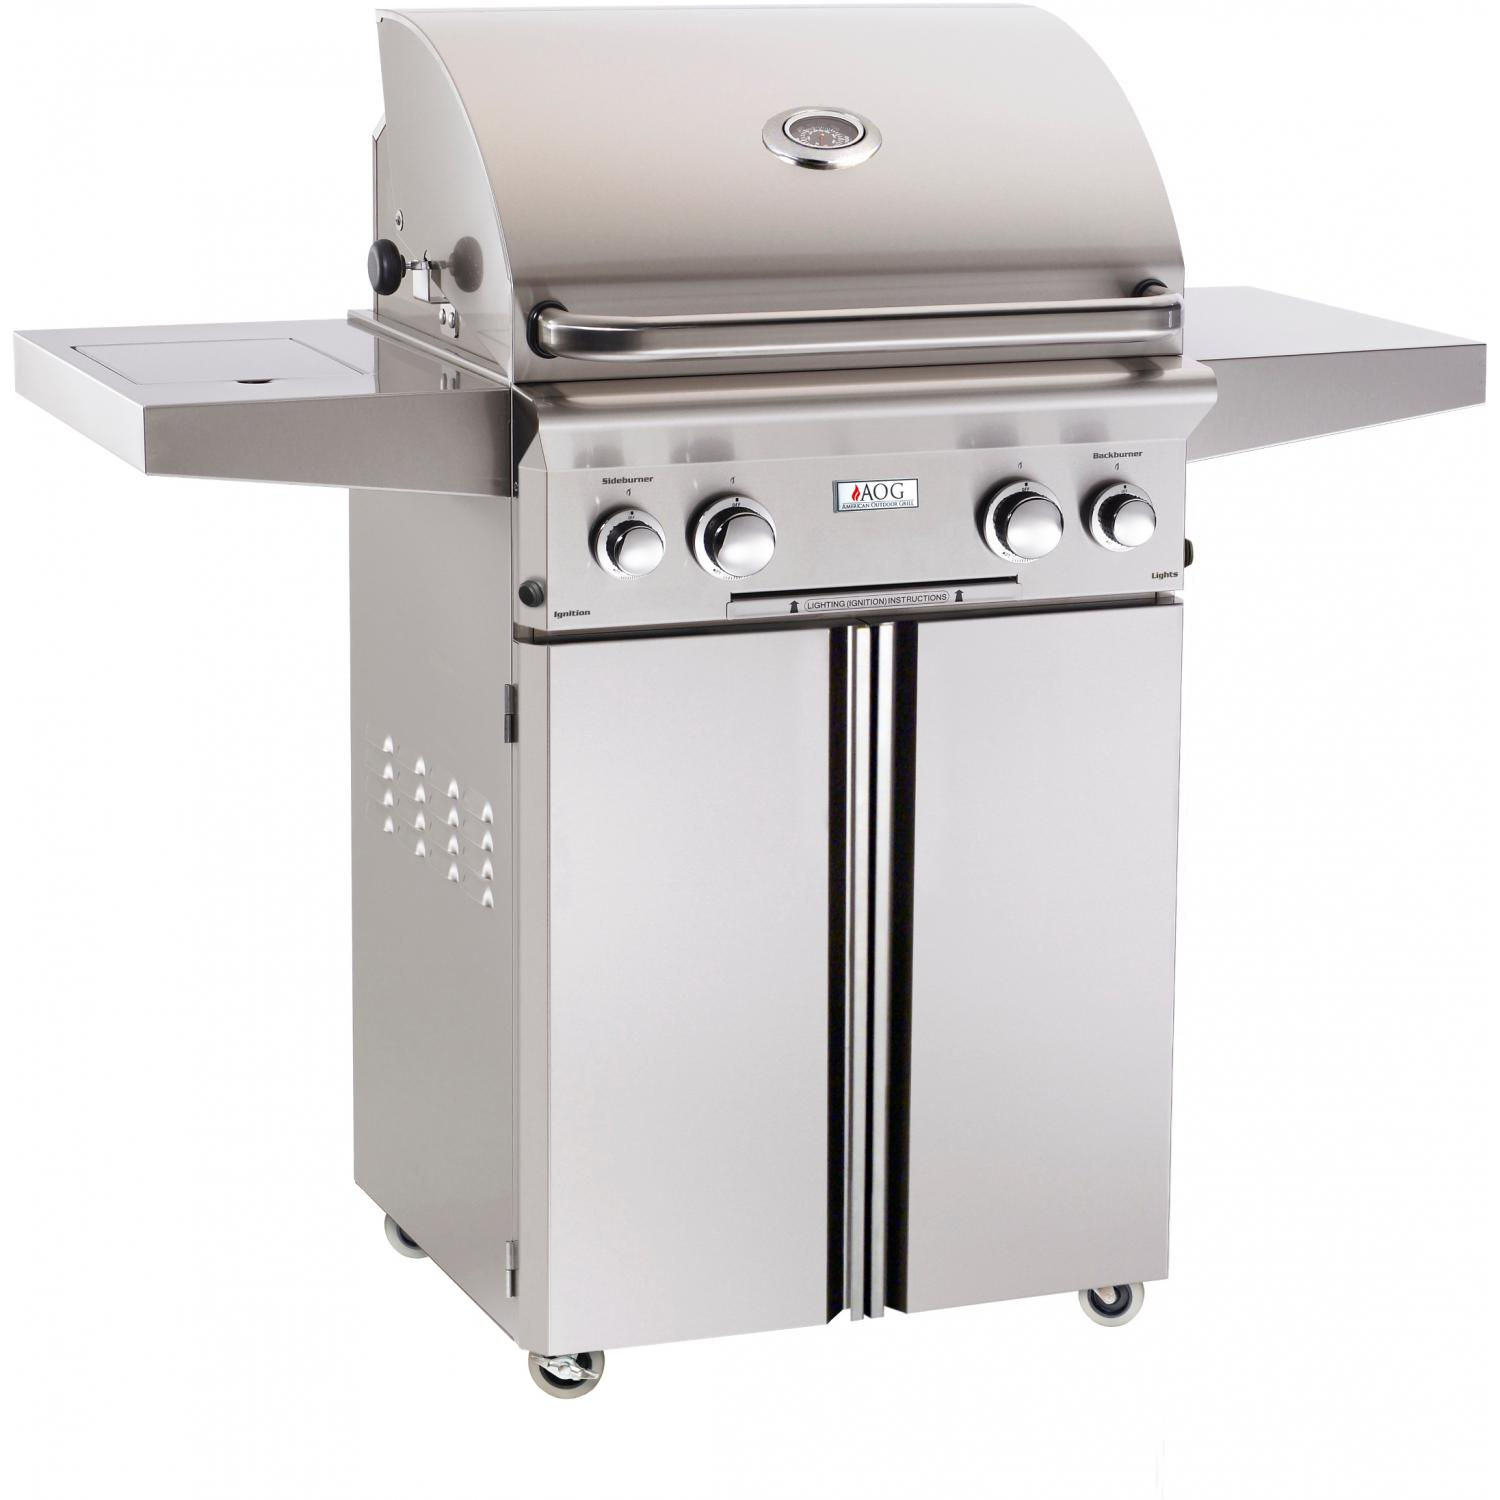 AOG American Outdoor Grill L-series 24-inch Natural Gas Grill On Cart With Rotisserie & Side Burner